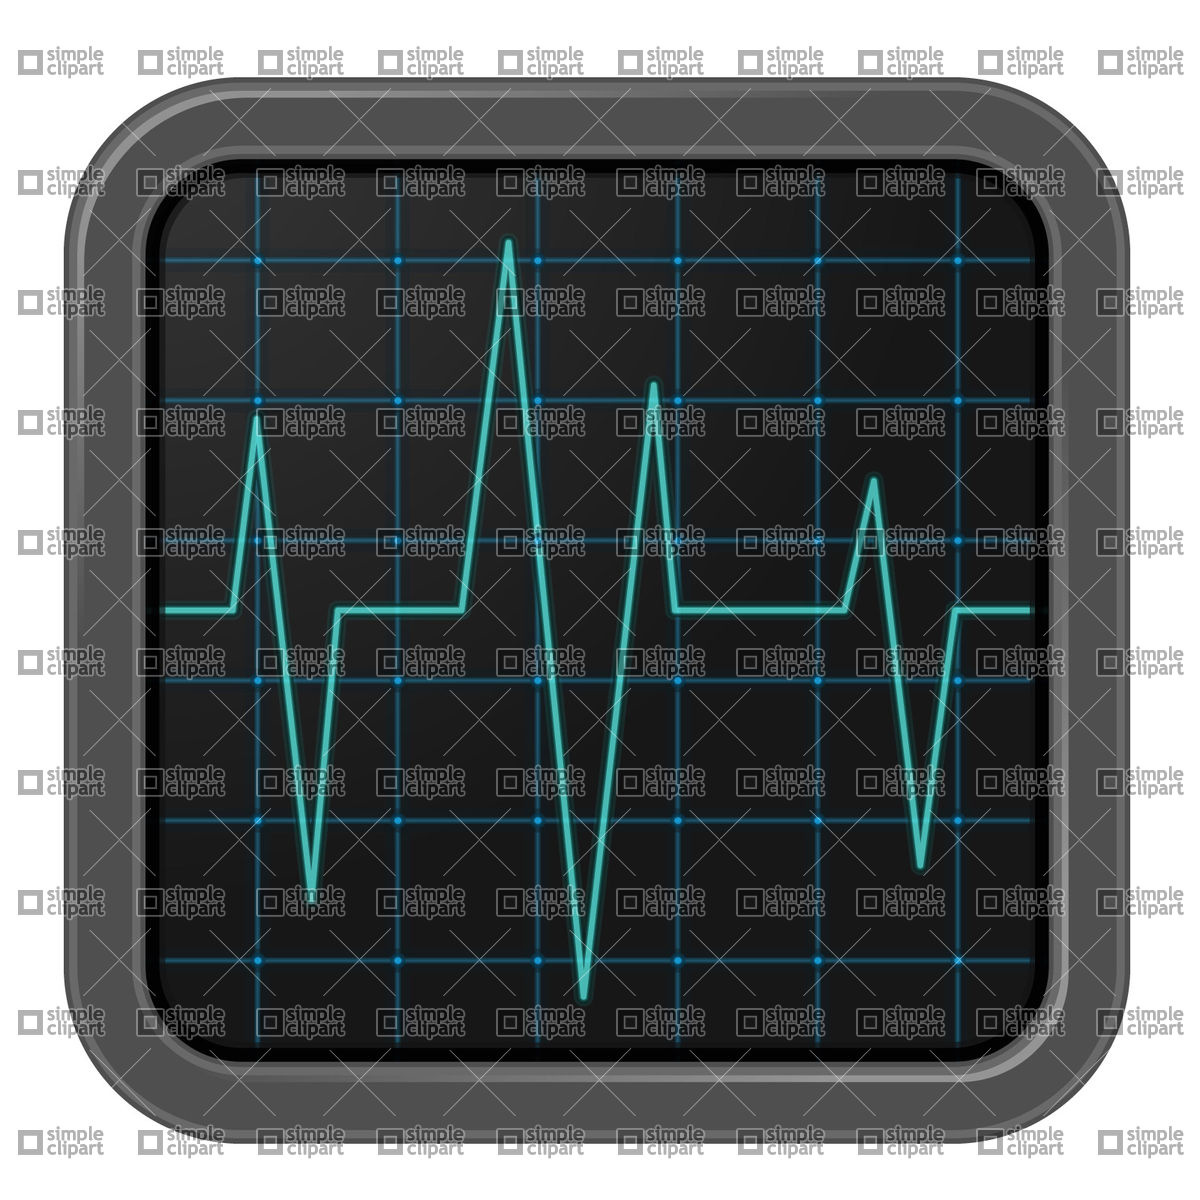 Oscillograph icon with pulse trace Vector Image #21704.